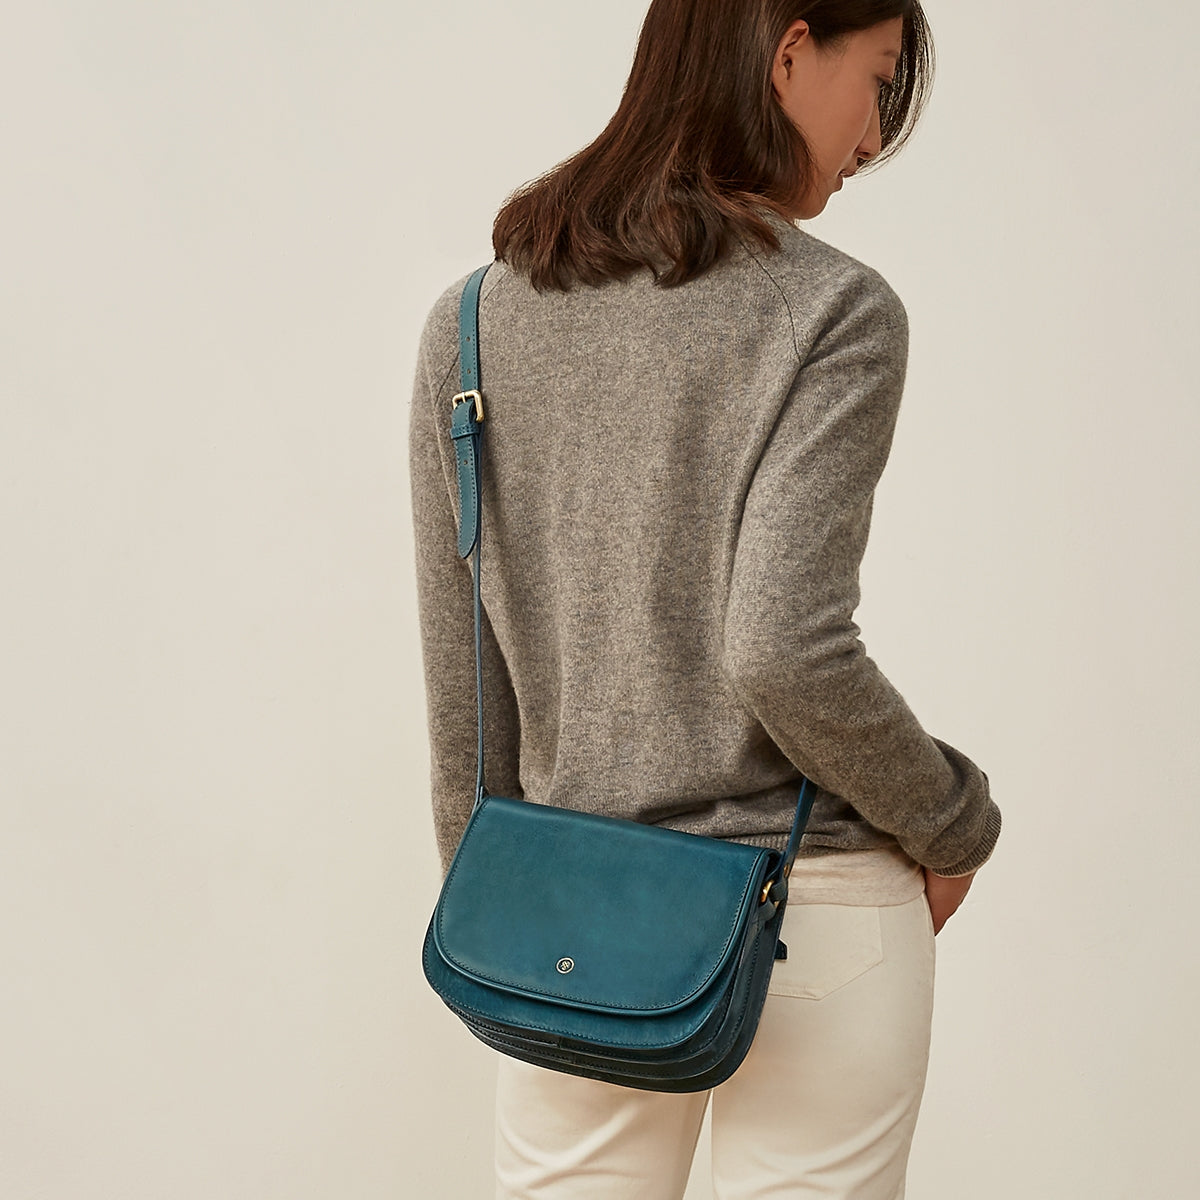 Image 7 of the 'MedollaM' Petrol Leather Women's Saddle Bag